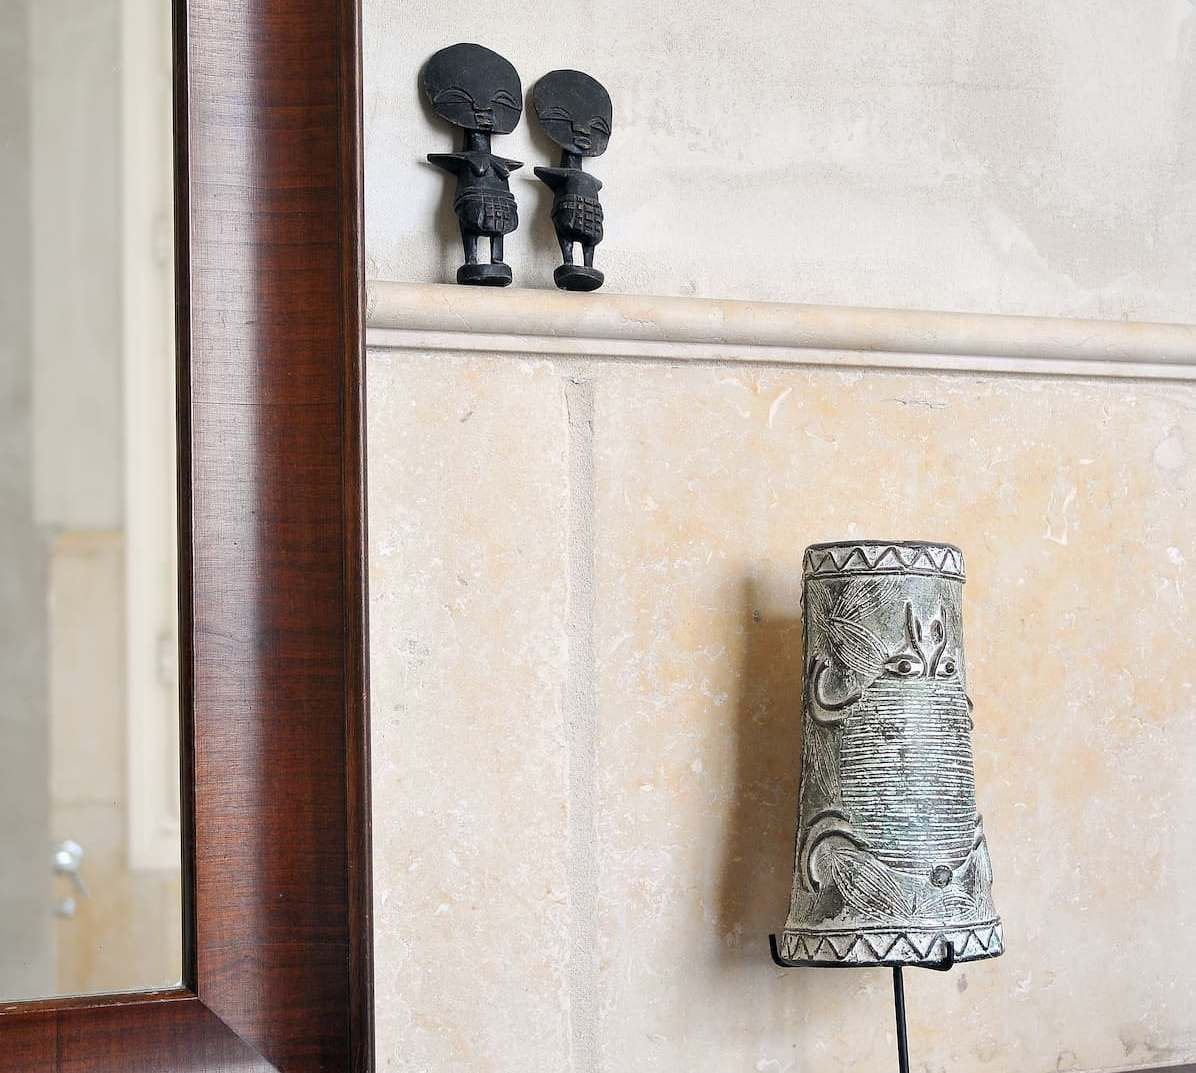 Decorative items: a stone wall, a ceramic lamp, iron figurines, and wood framed mirror.